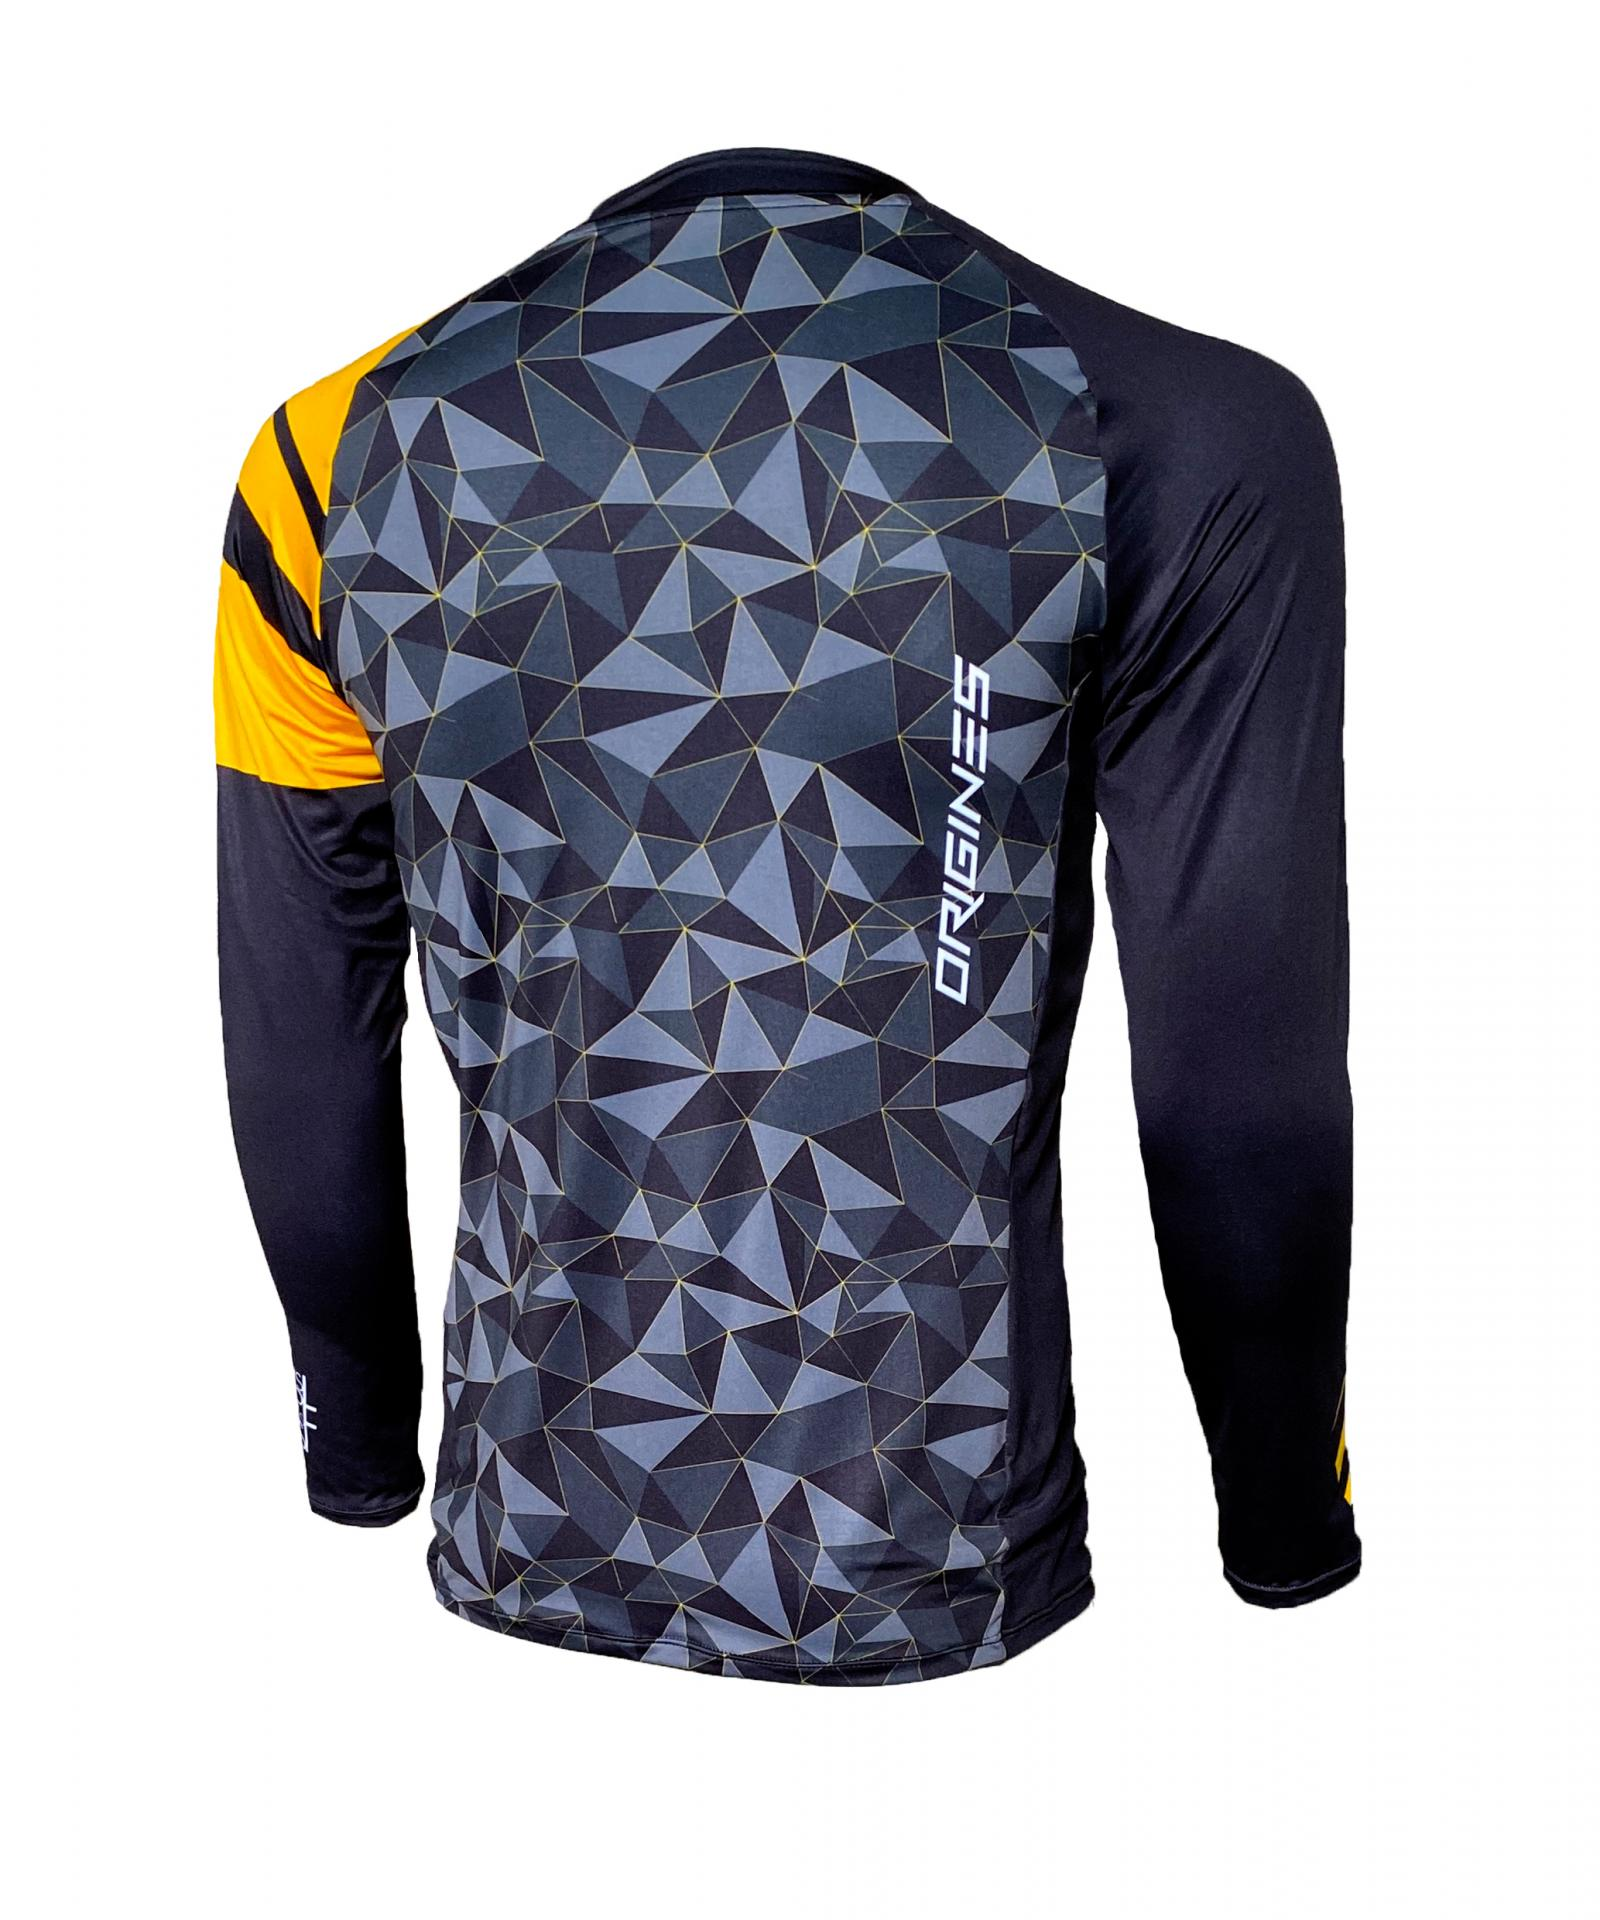 Jersey origines clothing enduro prism back 1